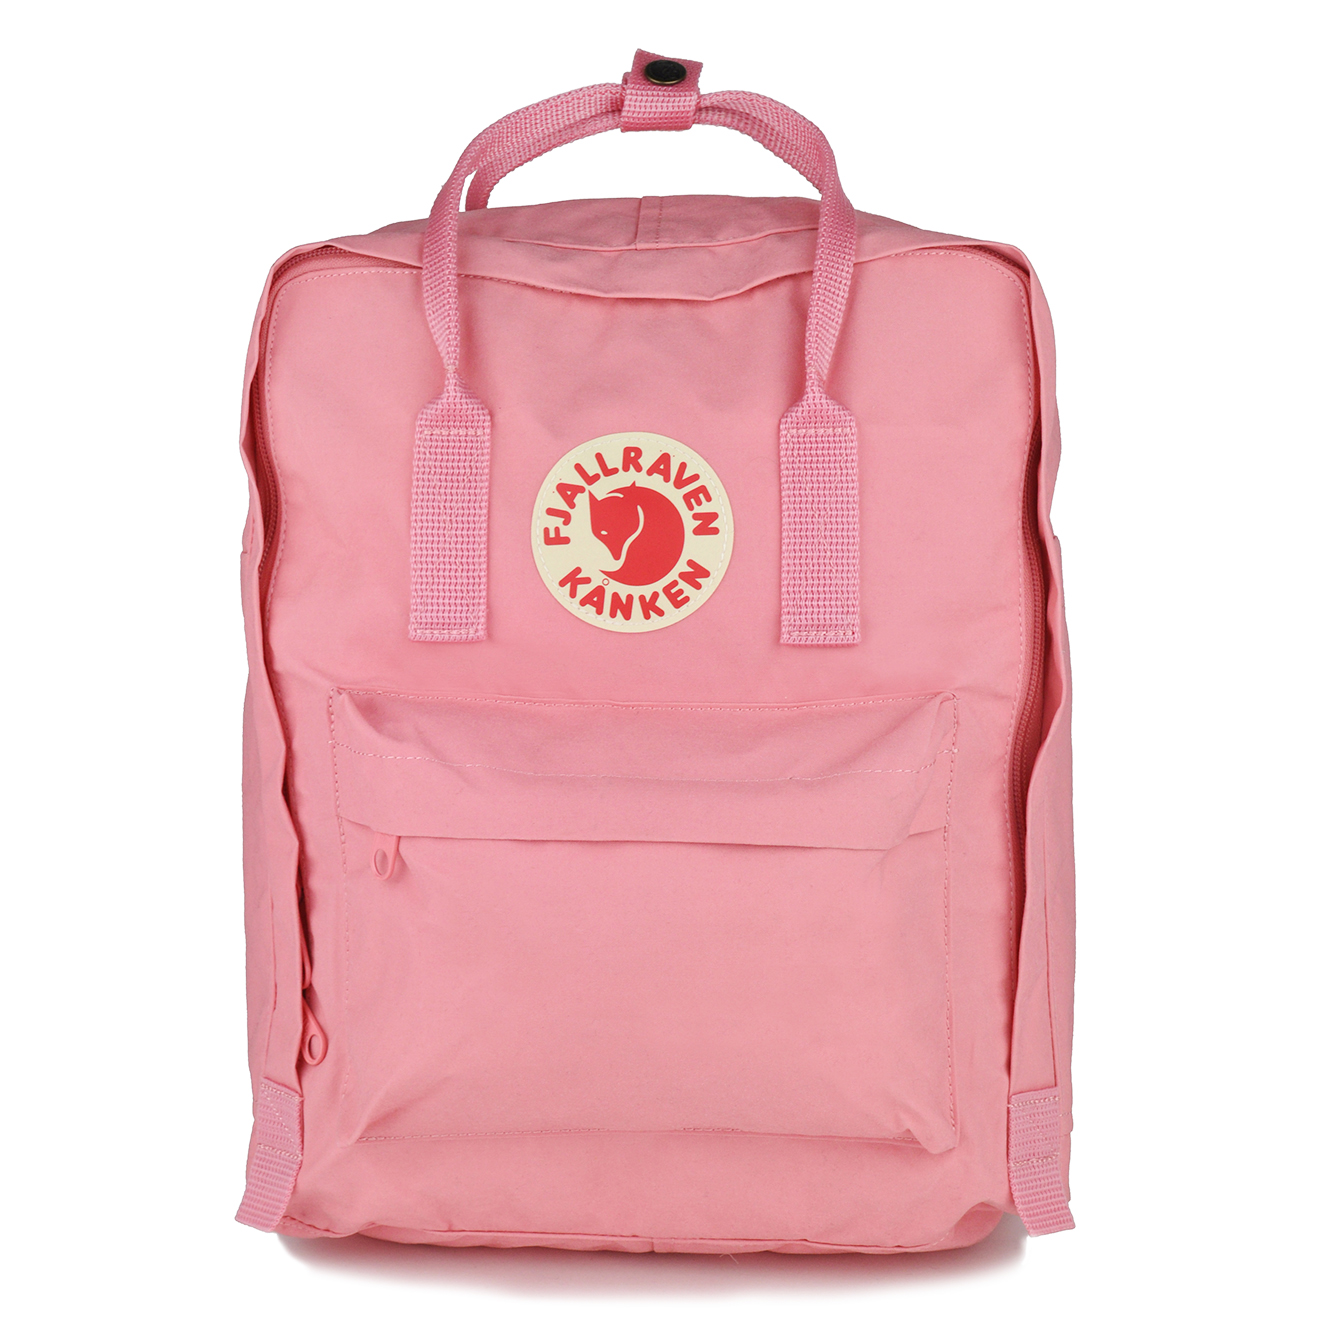 Buy COOFIT School Backpack for Girls & Boys Back to School Supplies for Middle School Cute Bookbag for School and other Kids' Backpacks at bibresipa.ga Our wide selection is eligible for free shipping and free returns.